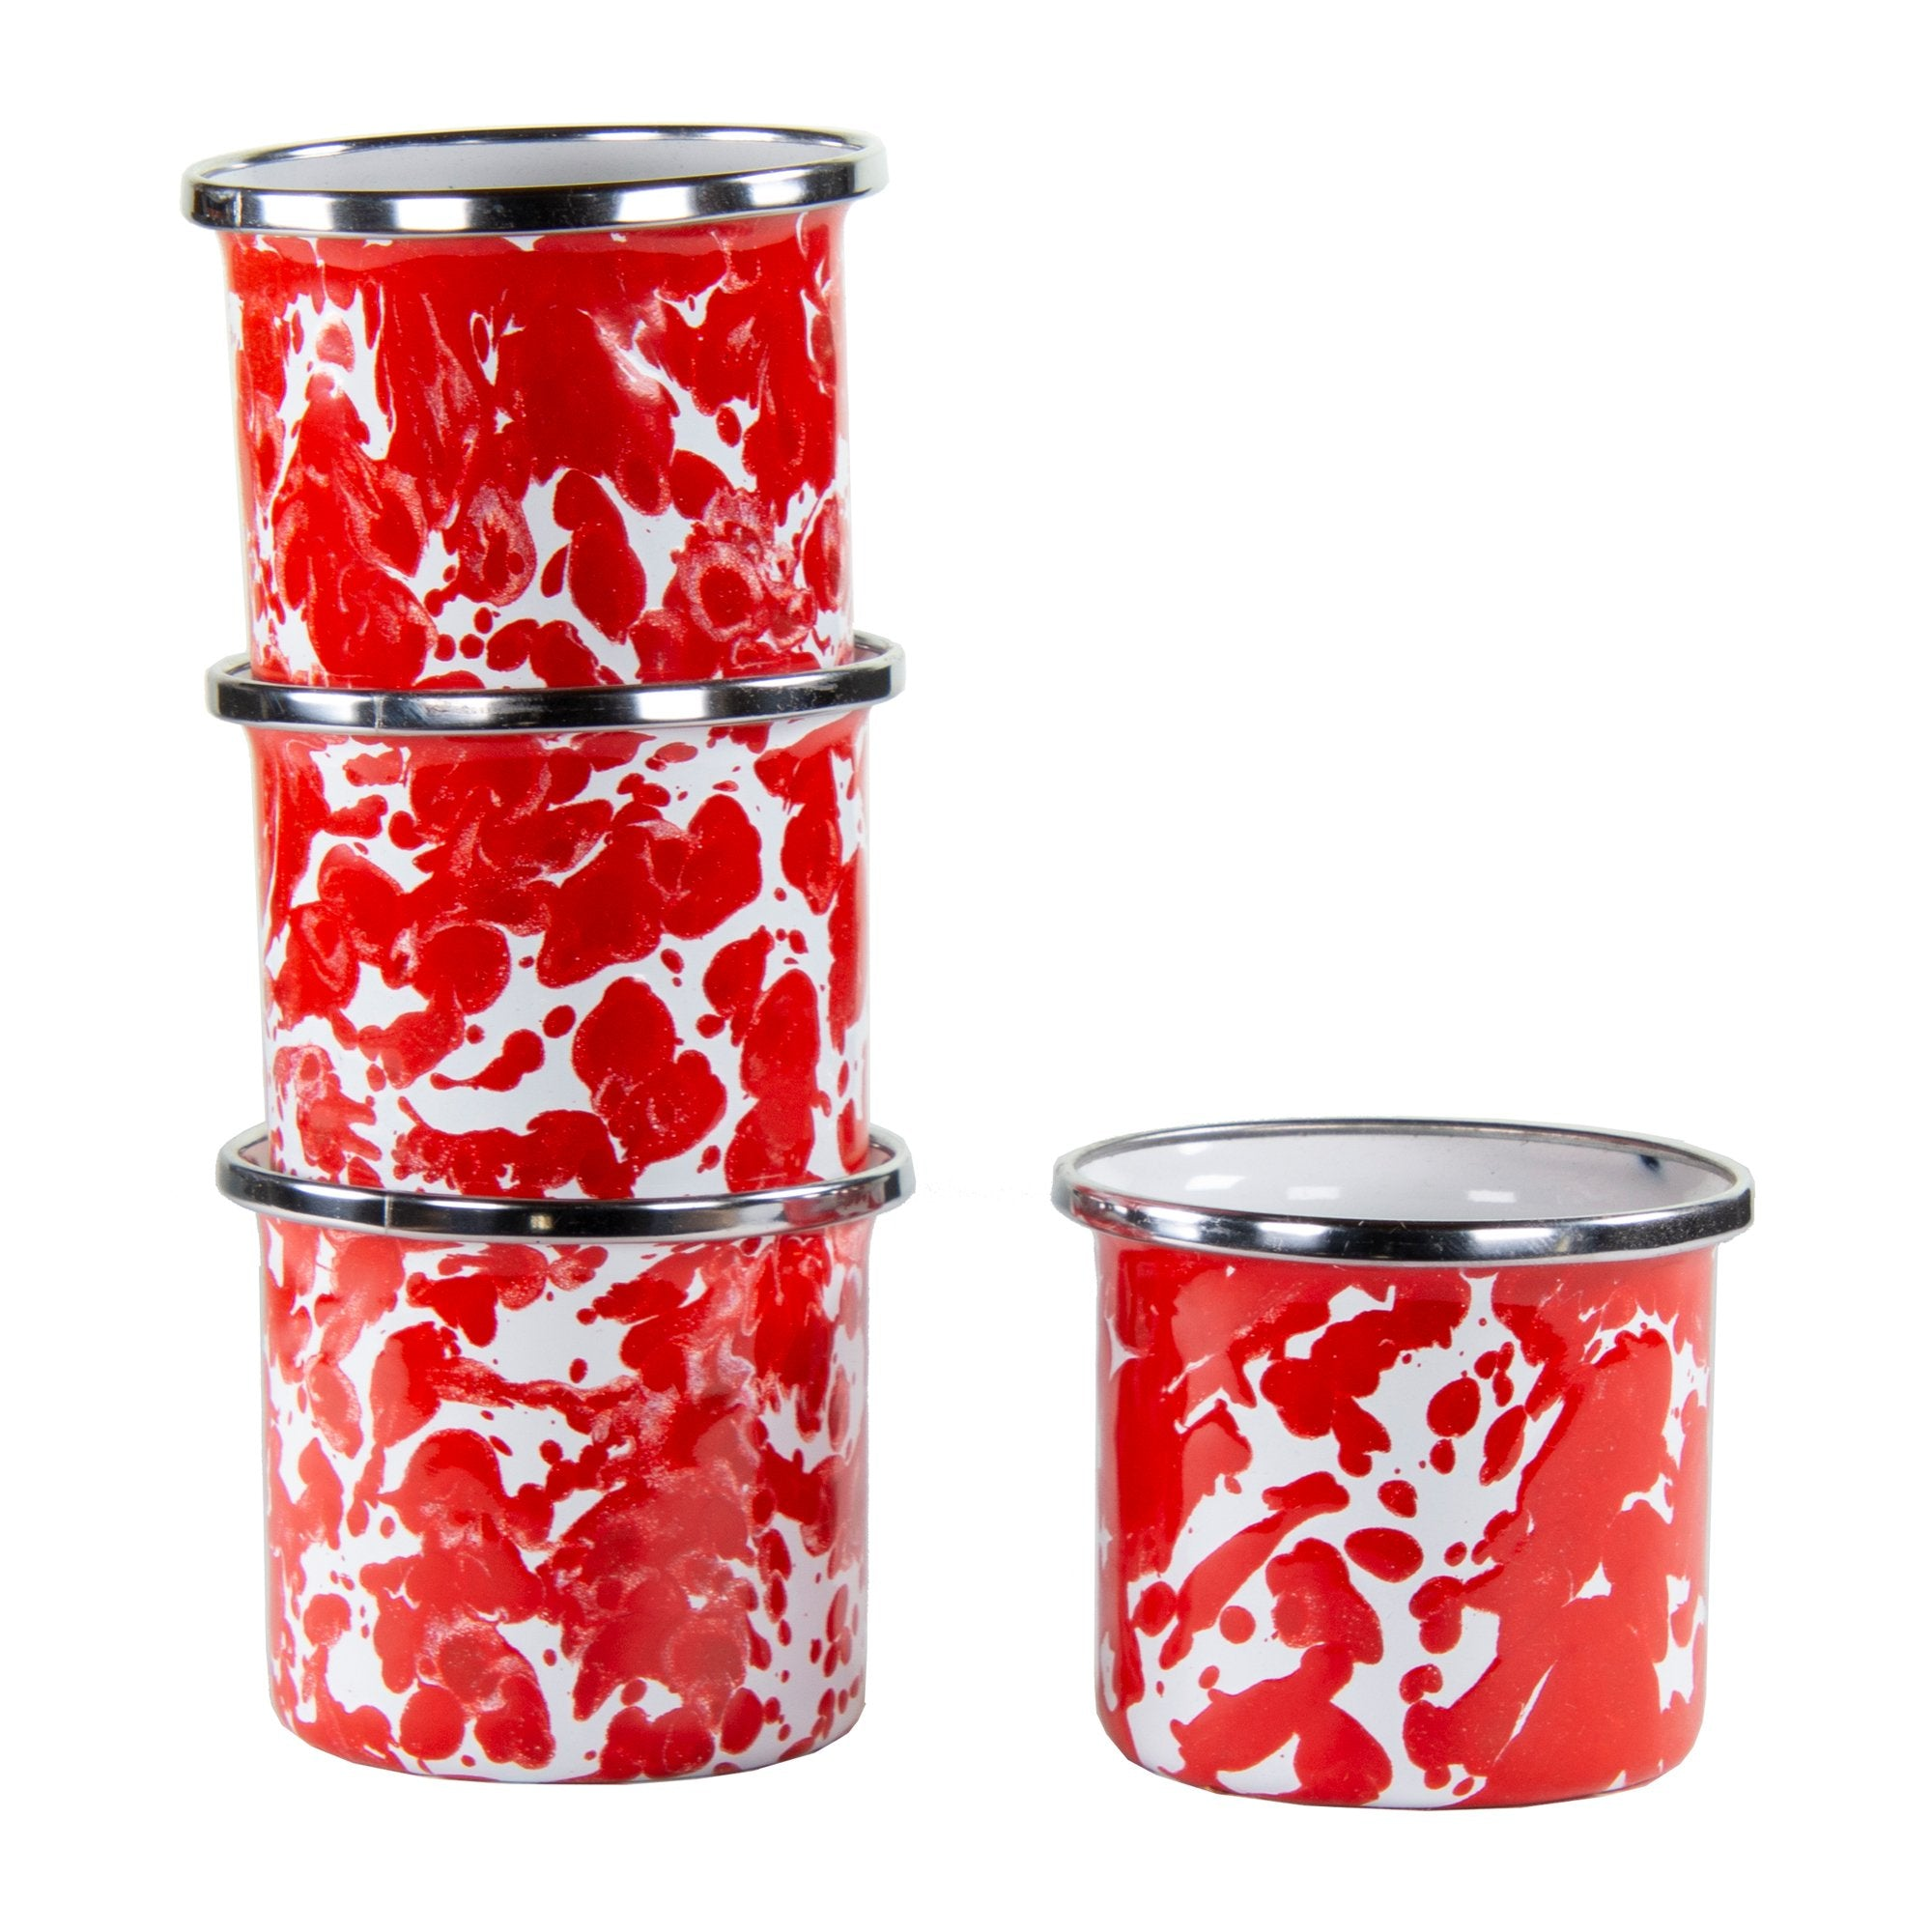 RD23S4 - Set of 4  - Red Swirl - 4 Ounce Baking Ramekins by Golden Rabbit